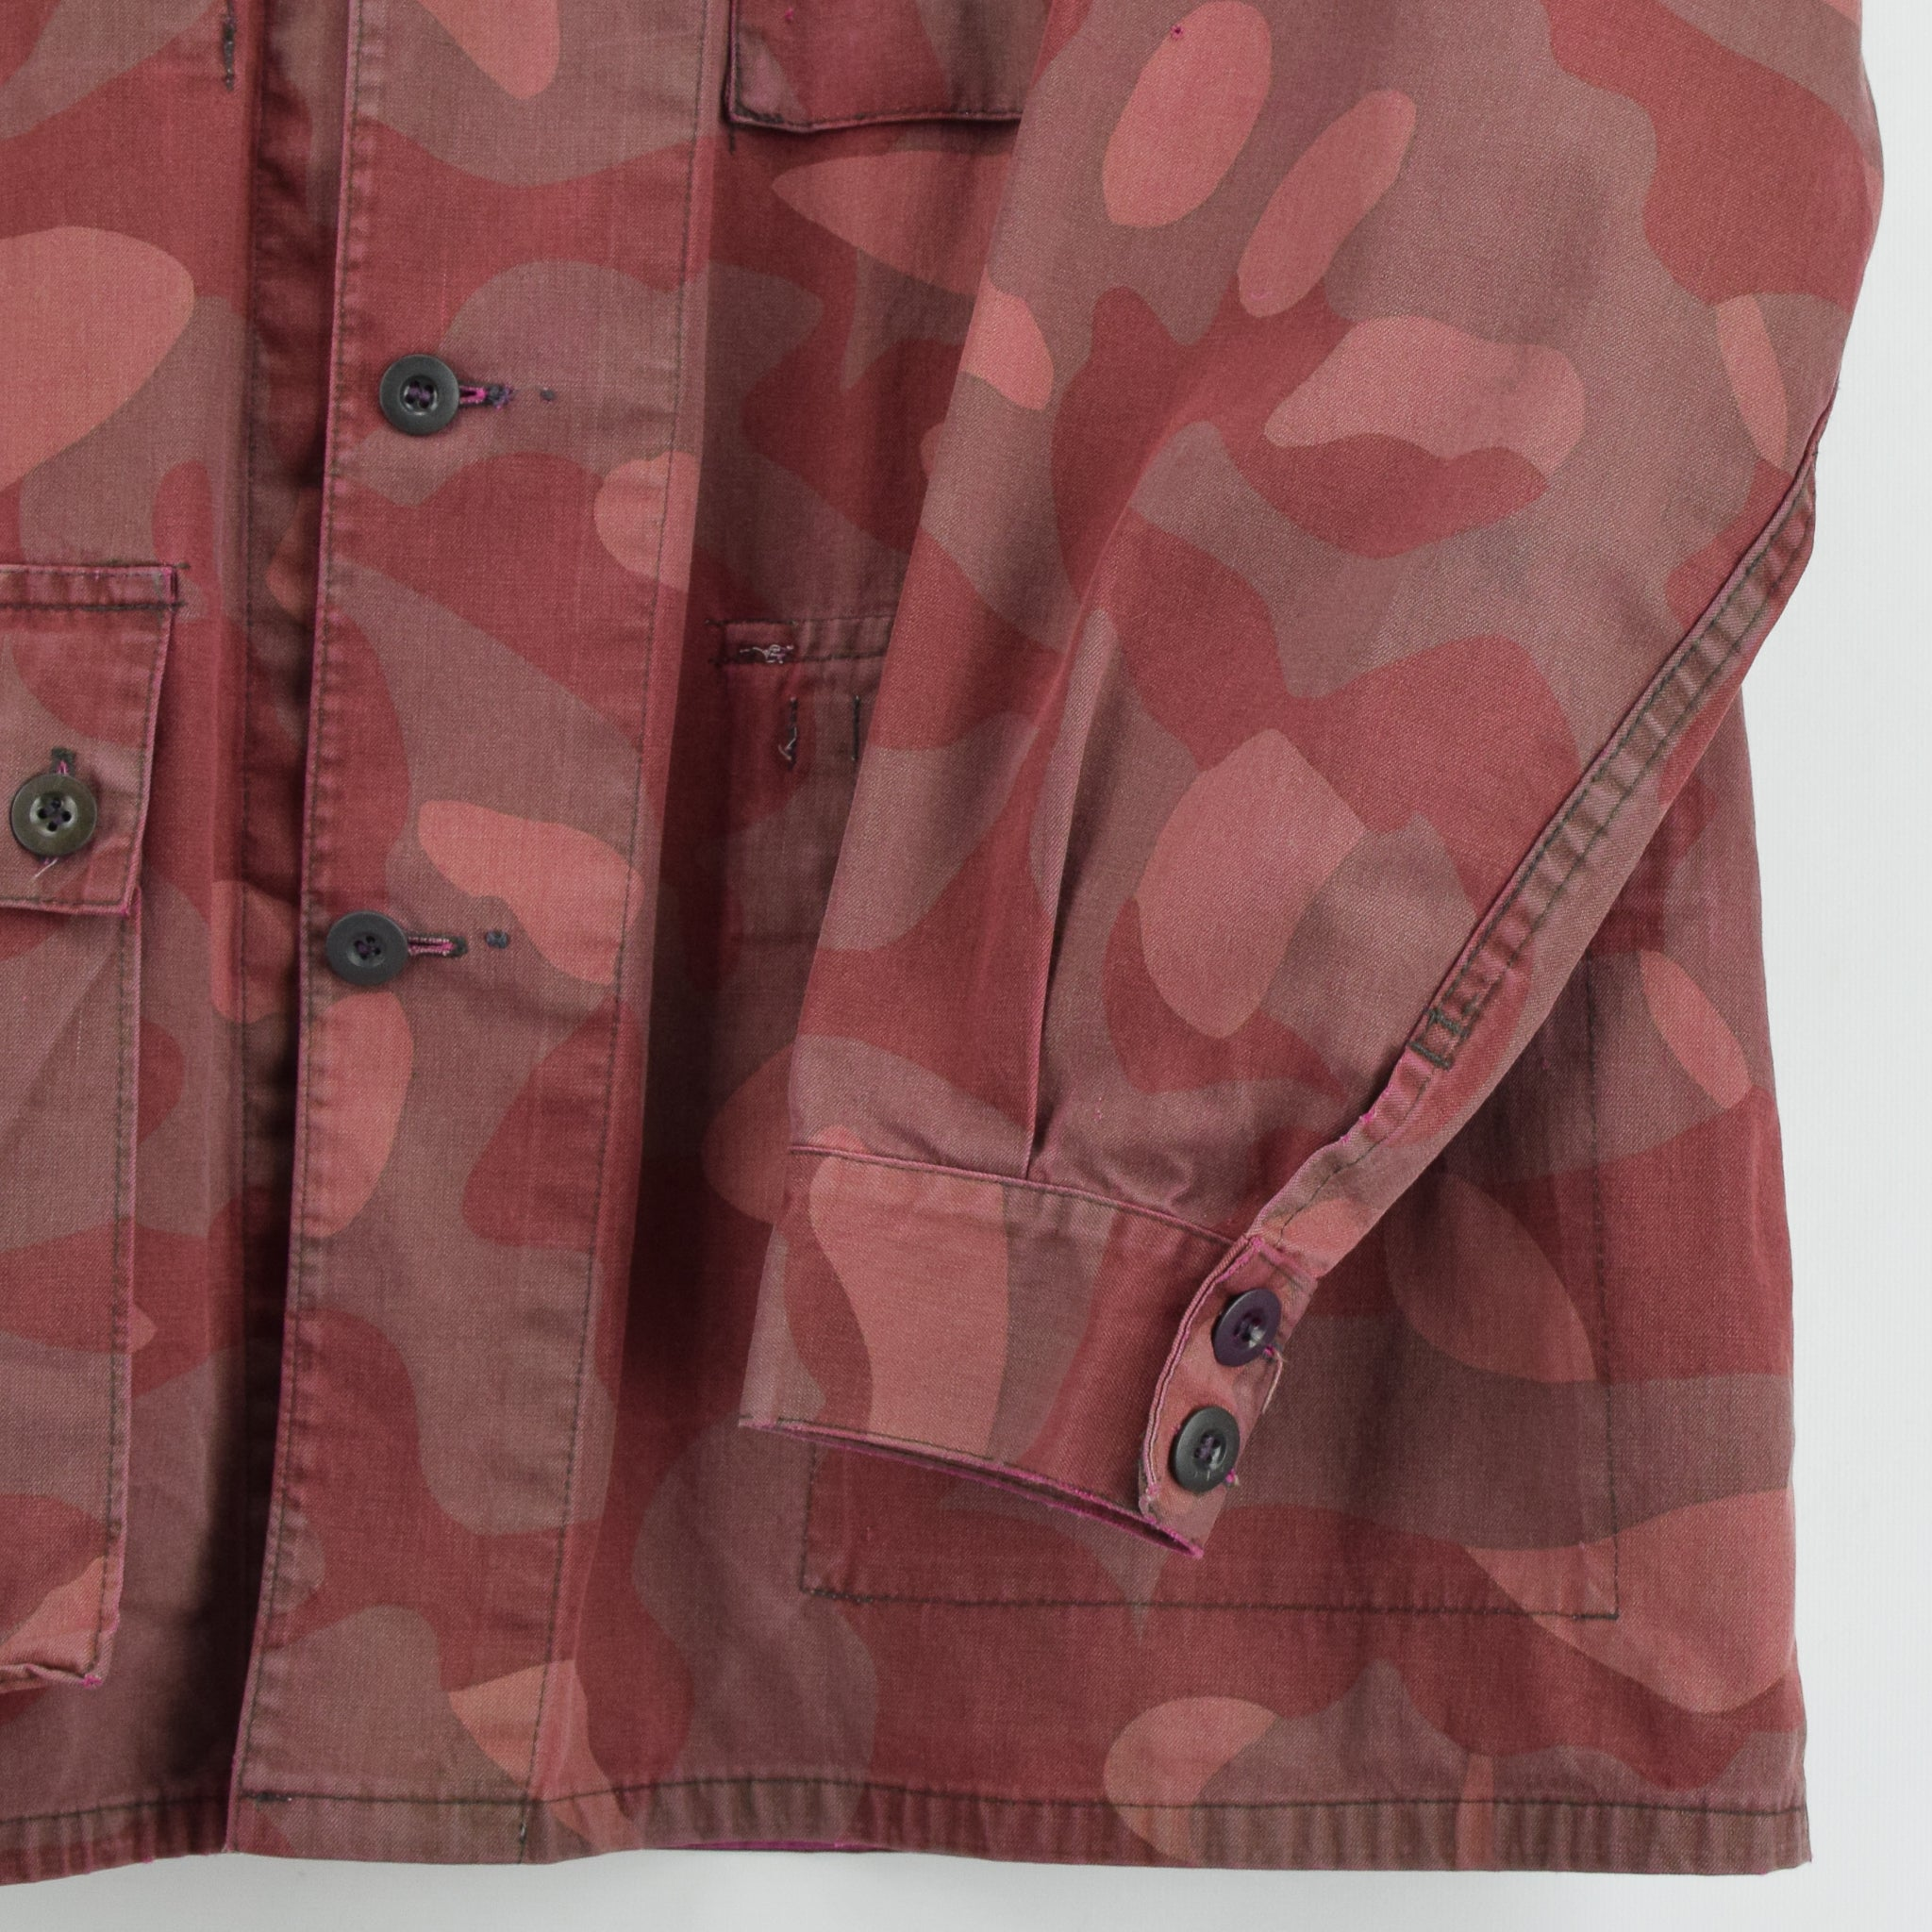 Vintage 70s Military Finnish Army Pink Overdyed Camo Mountain Field Jacket XL front hem